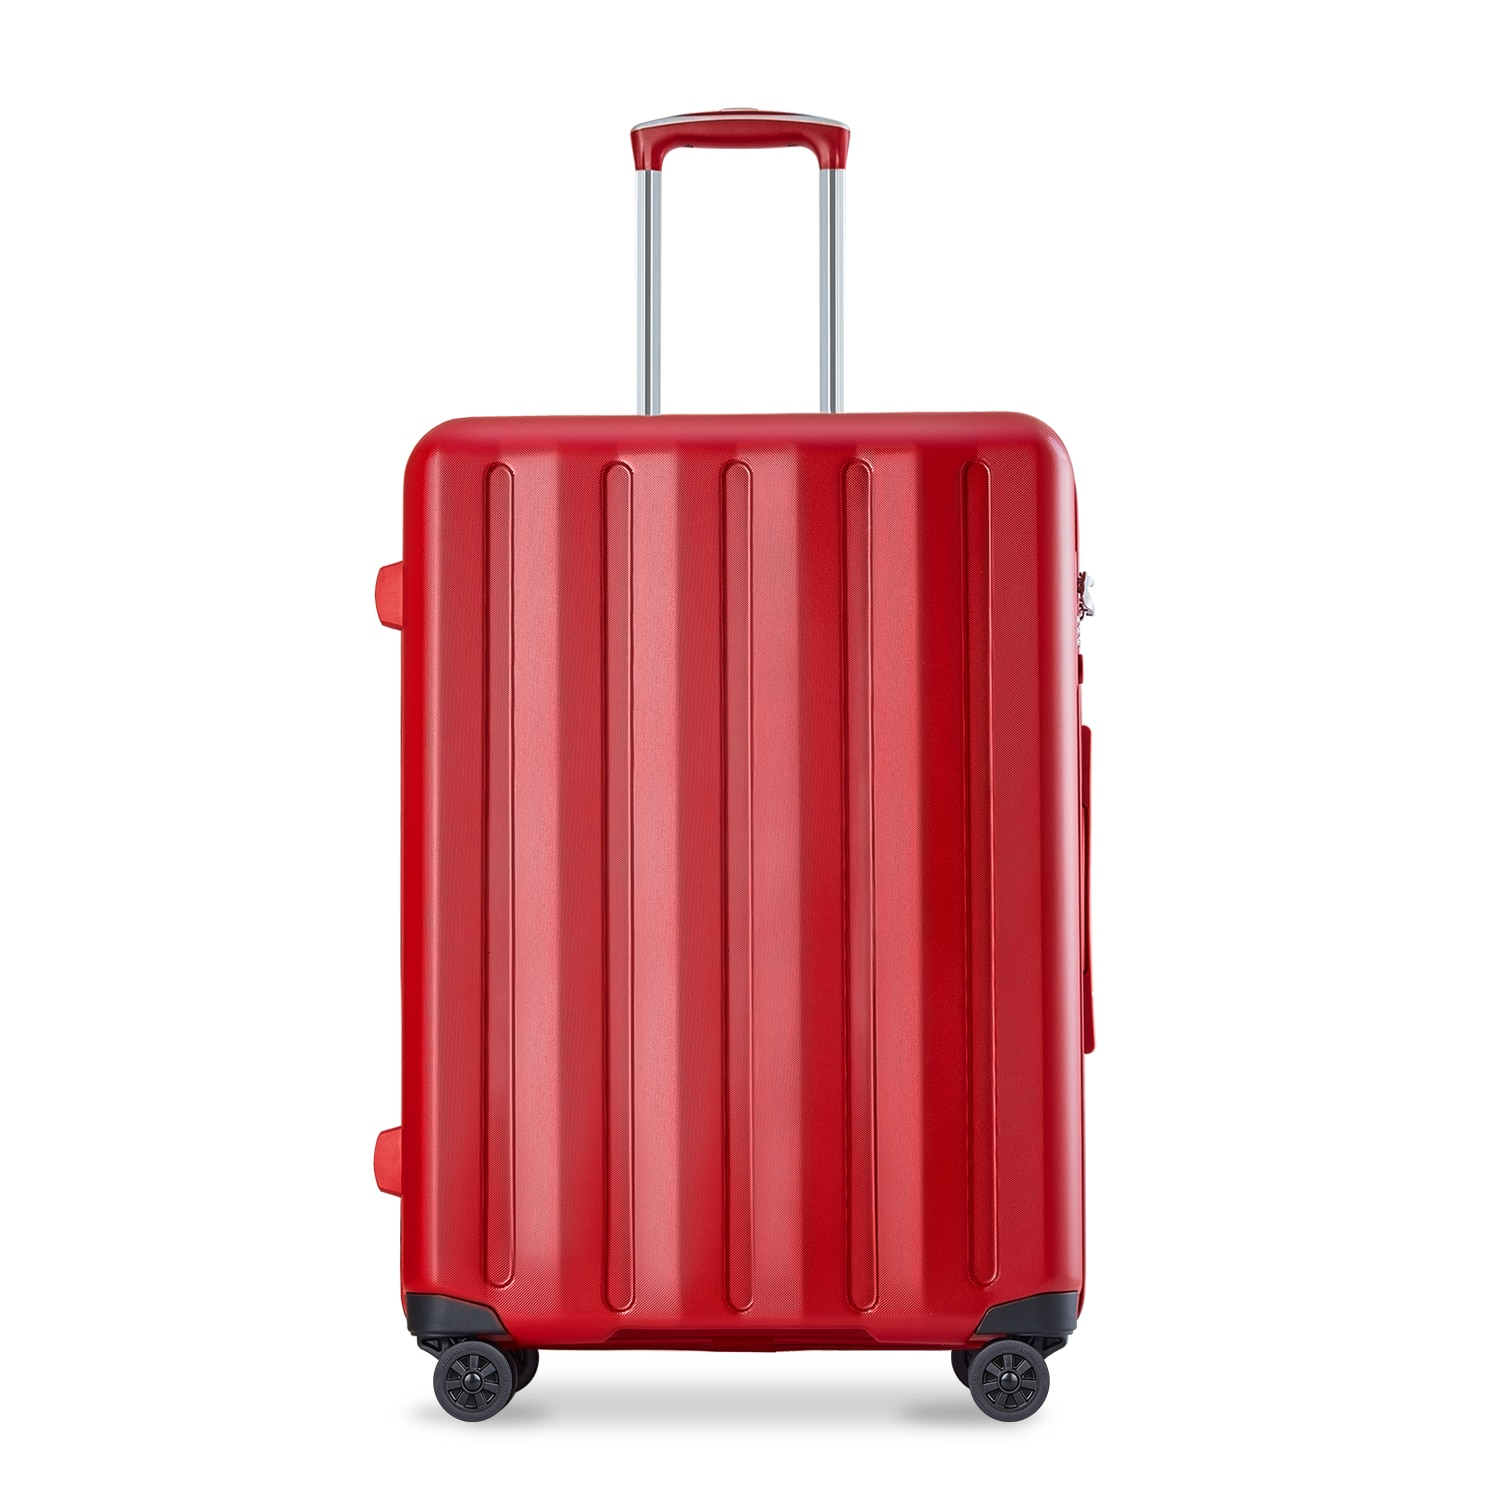 Hardside Luggage with Spinner Wheels,Carry On Suitcases Elegance Trolley Case with TSA Lock,100% PC,for Business Trip&Travel